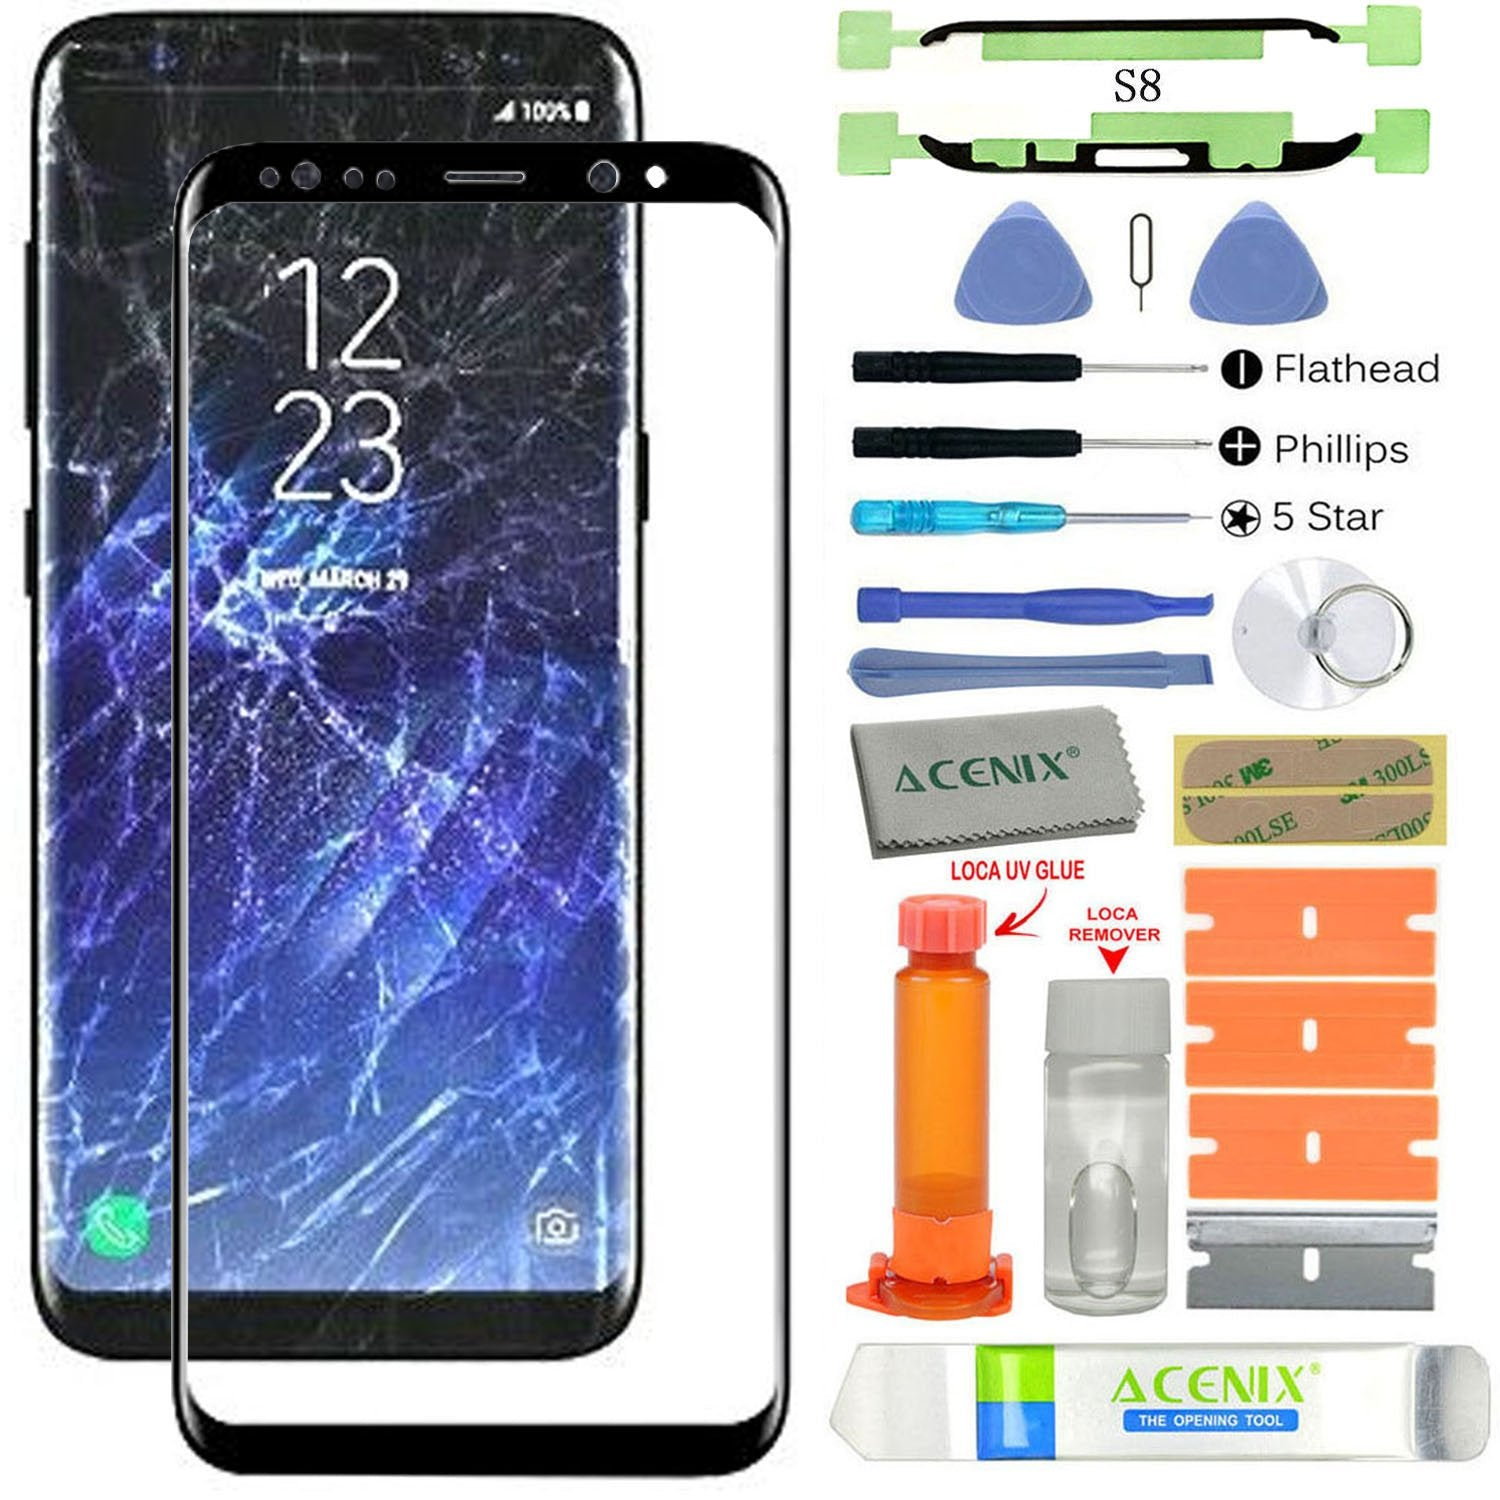 a98a2f6bda8 ACENIX Replacement Screen Front Glass Lens Repair Kit Black for Samsung  Galaxy S8 + UV Glue and .